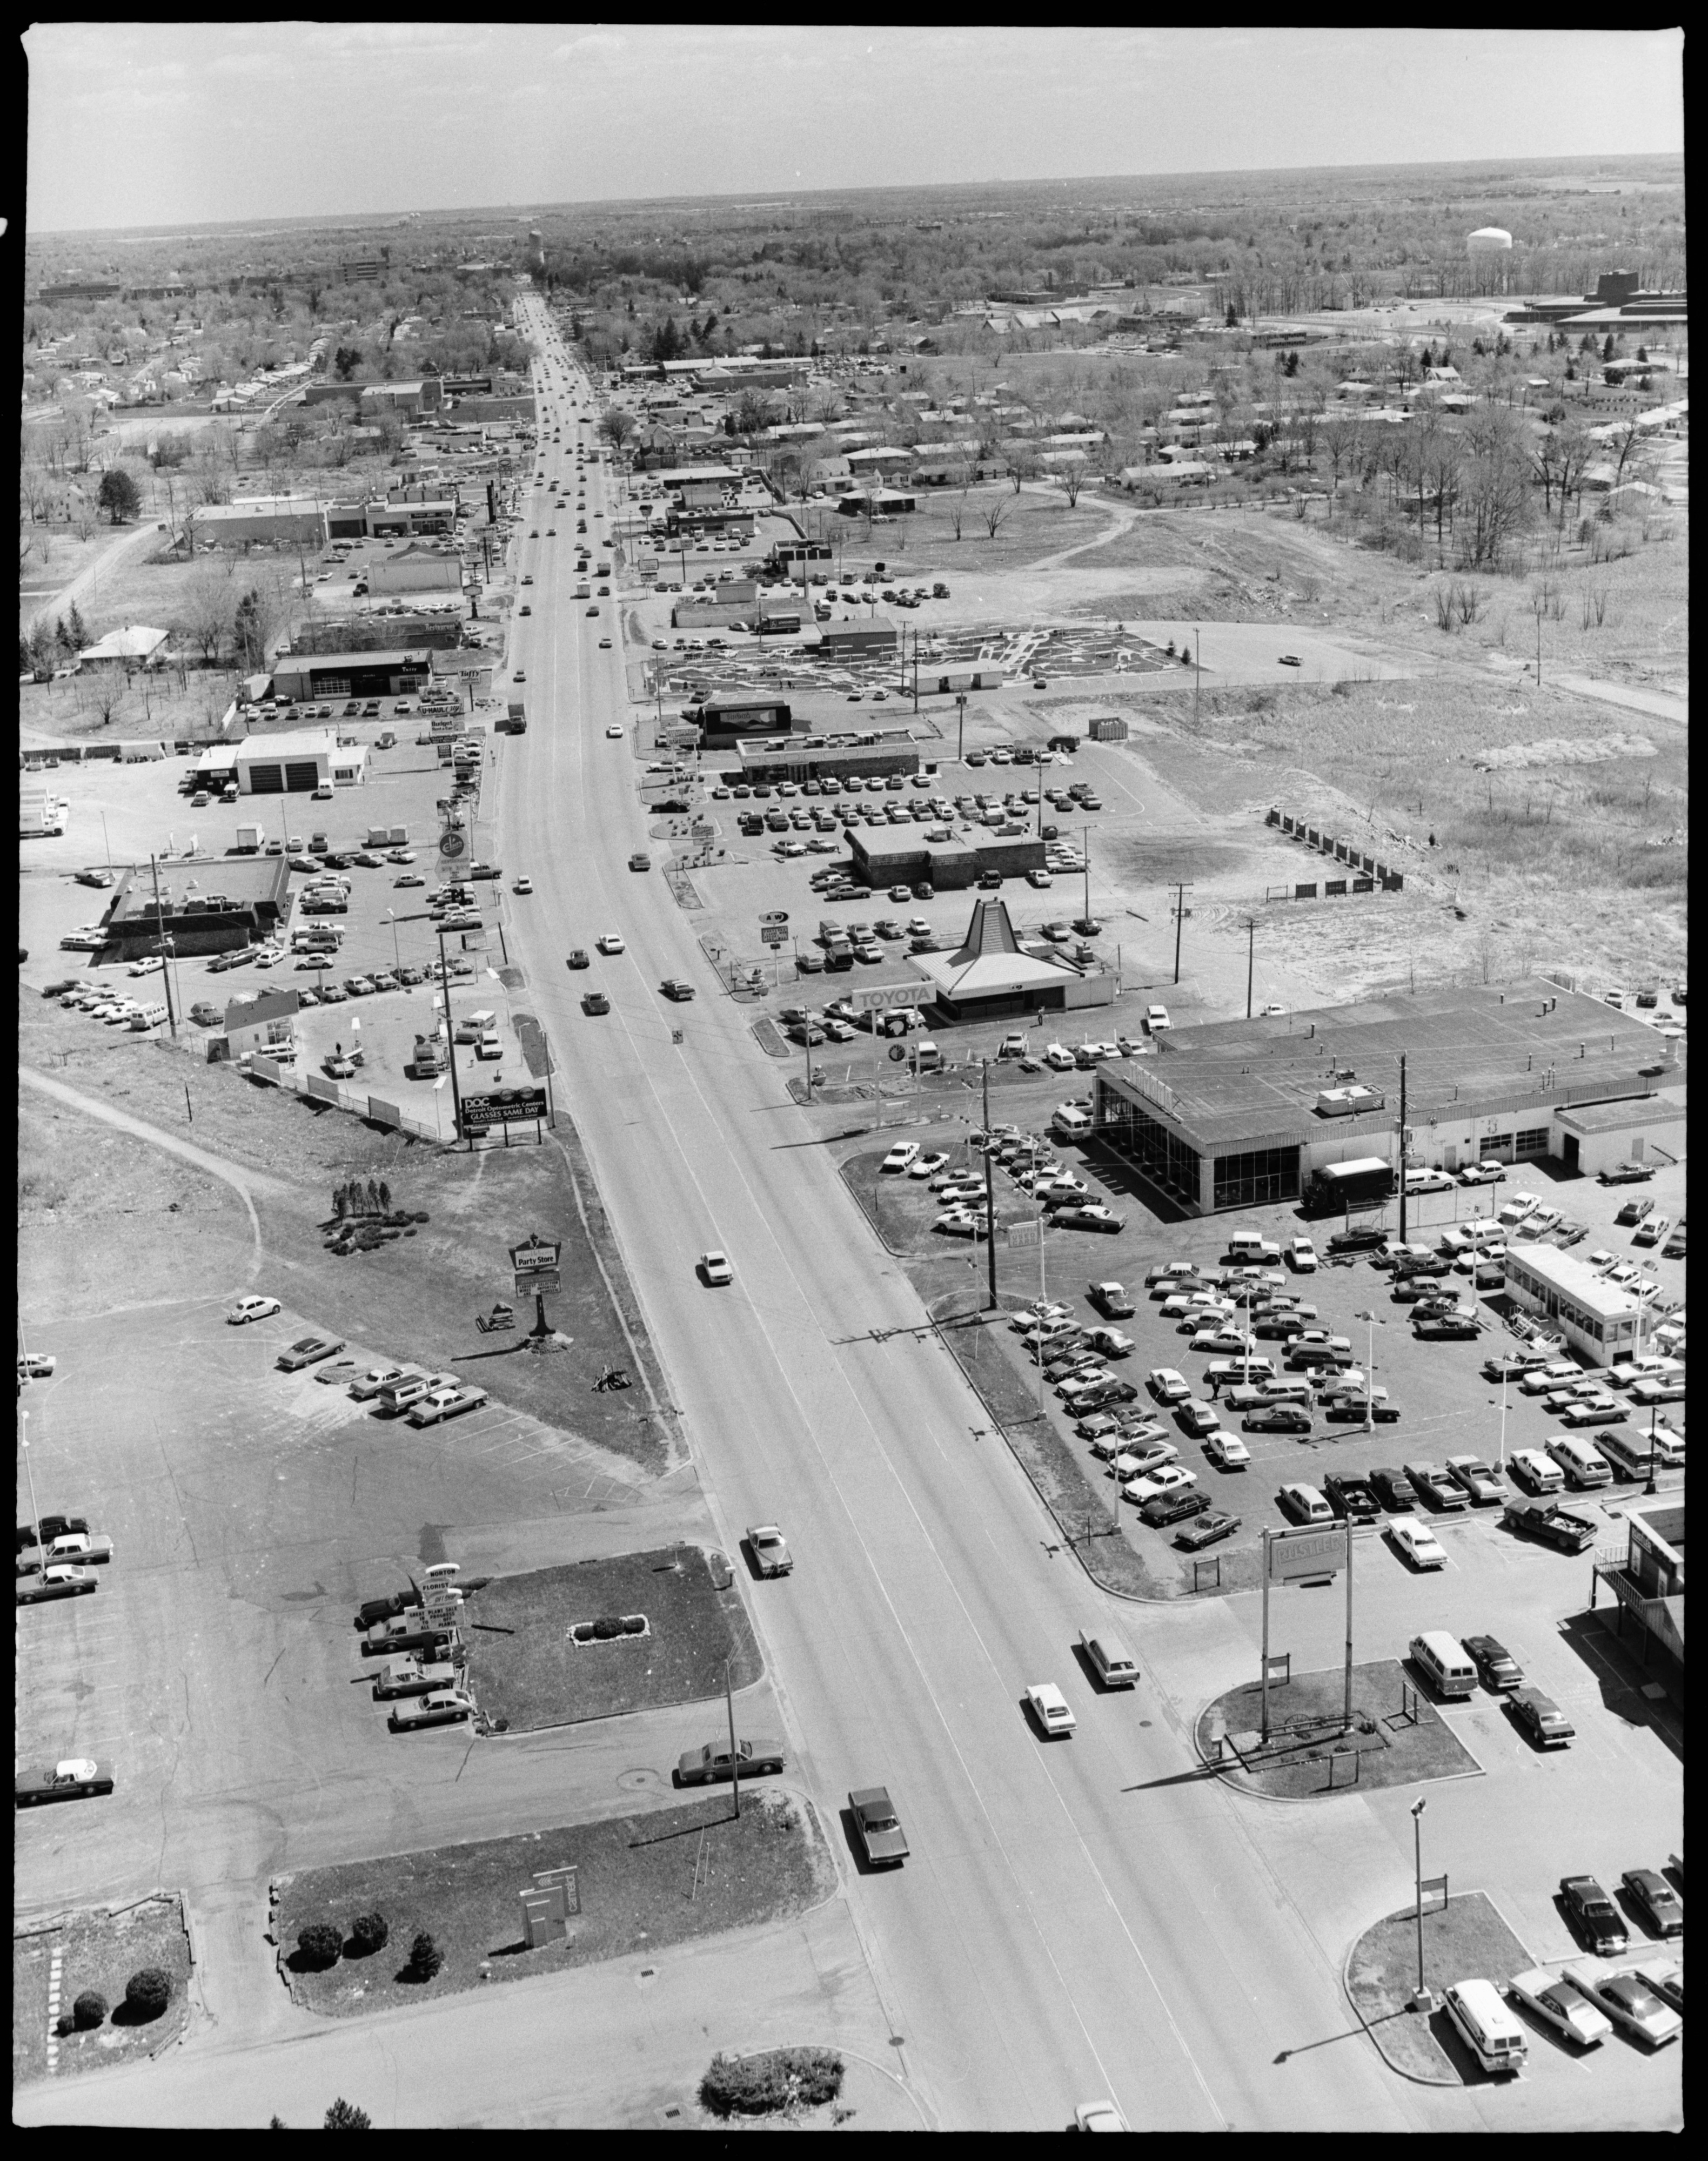 Aerial Photograph of Washtenaw Ave., Facing West toward Ypsilanti, April 1978 image